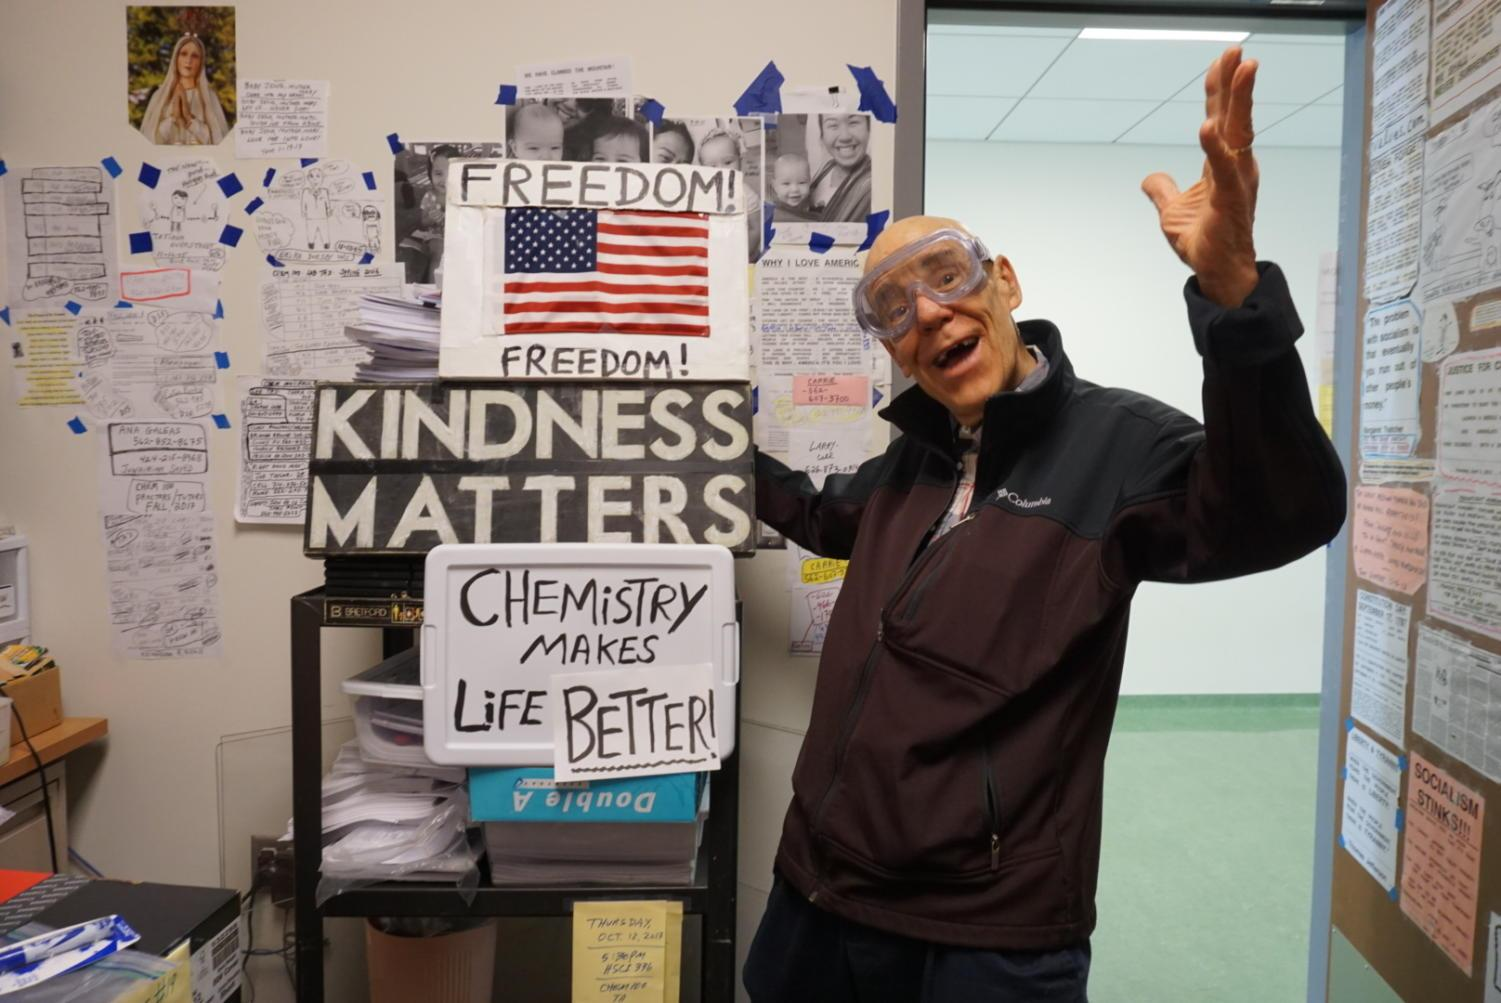 Tom Gufrey has been teaching chemistry and kindness at Cal State Long Beach for 40 years.